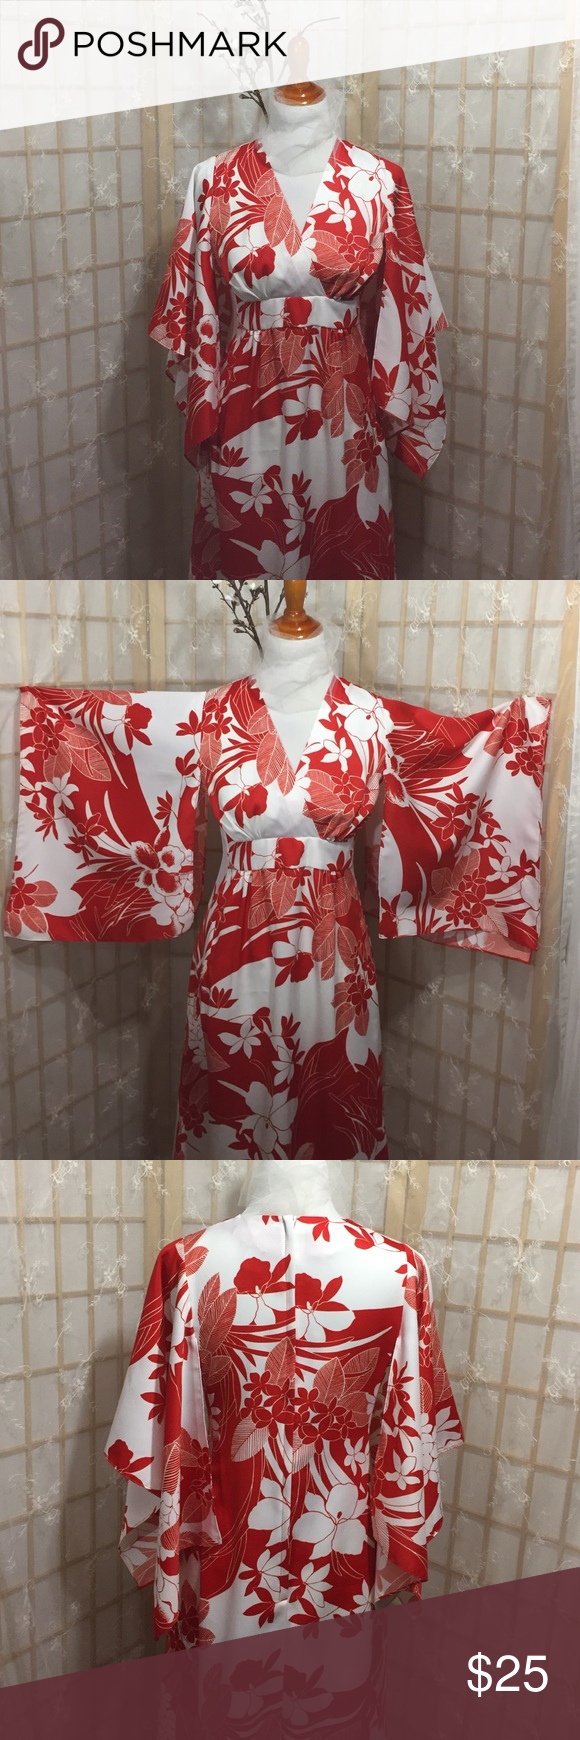 Dress Authentic Hawaiian Moo Moo dress!  perfect vacation outfit from smoke free home  zippered back, machine washable. From top of shoulder to bottom hem this dress measures 50 inches, it was hemmed approximately 2inches and could very easily be taken down (see pic) excellent condition sun fashions of hawaii Dresses Maxi